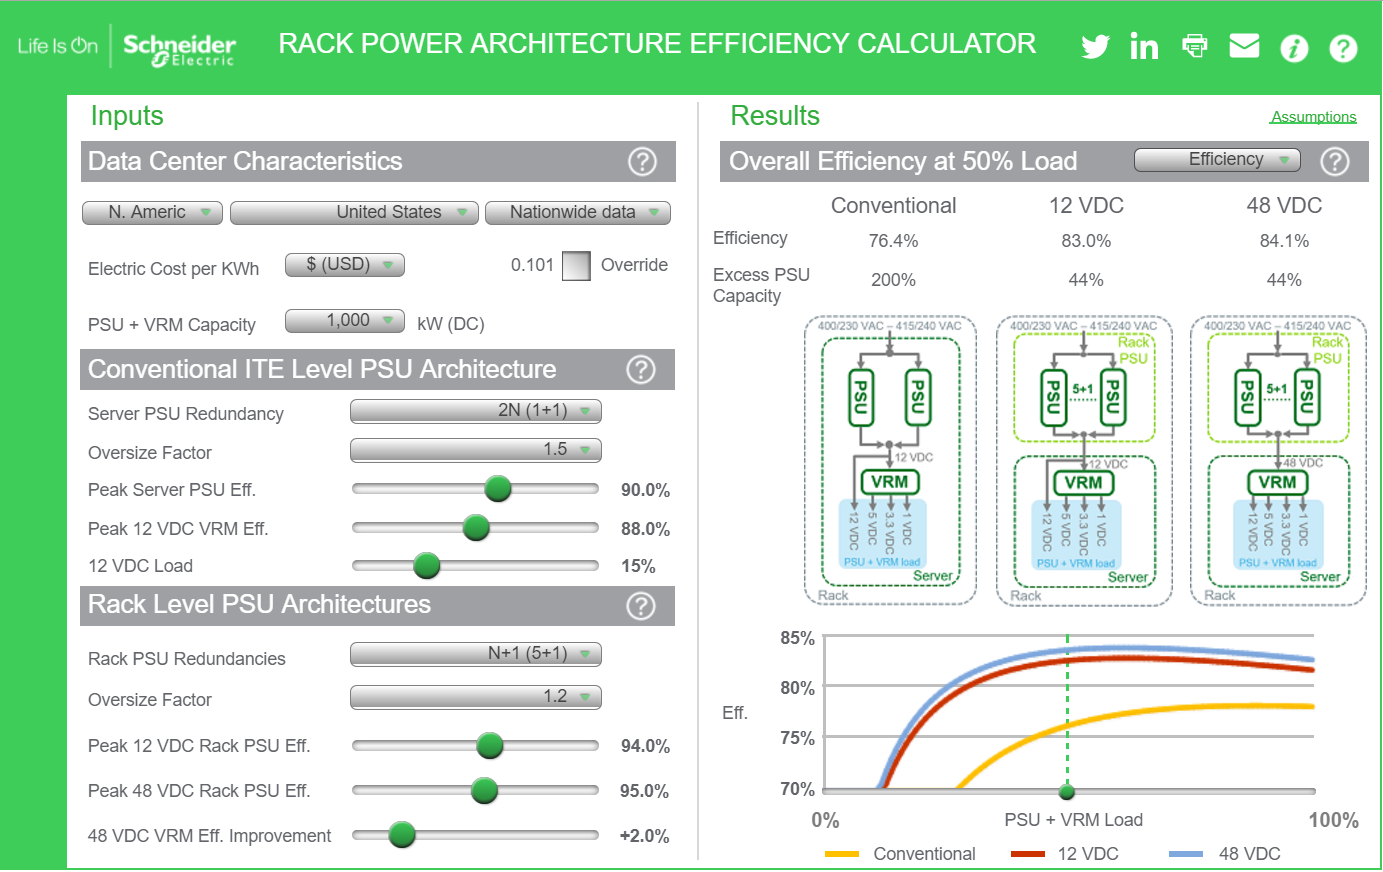 Rack Power Architecture Efficiency Calculator